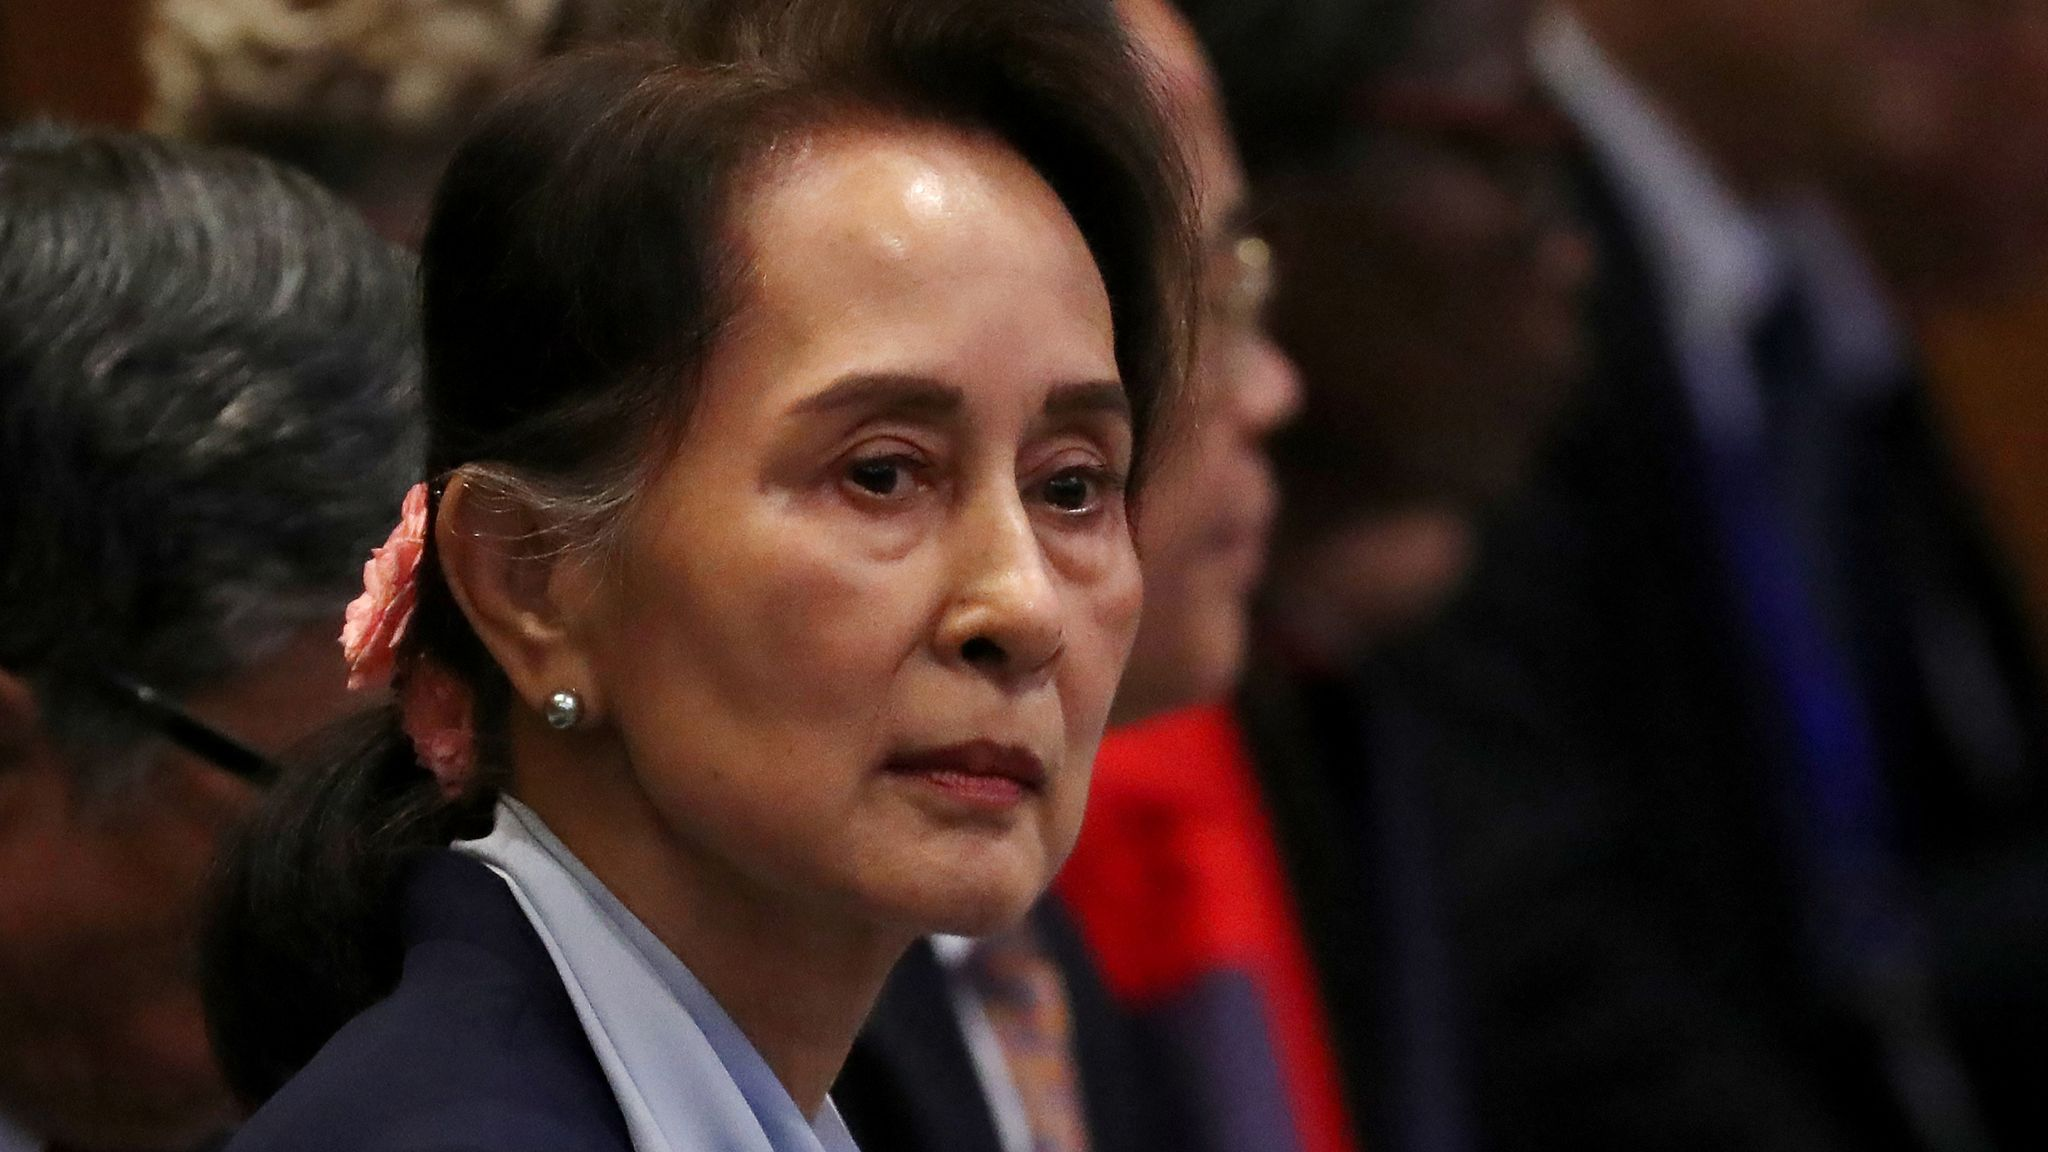 Aung San Suu Kyi: 'No tolerance' for human rights violations against Rohingya